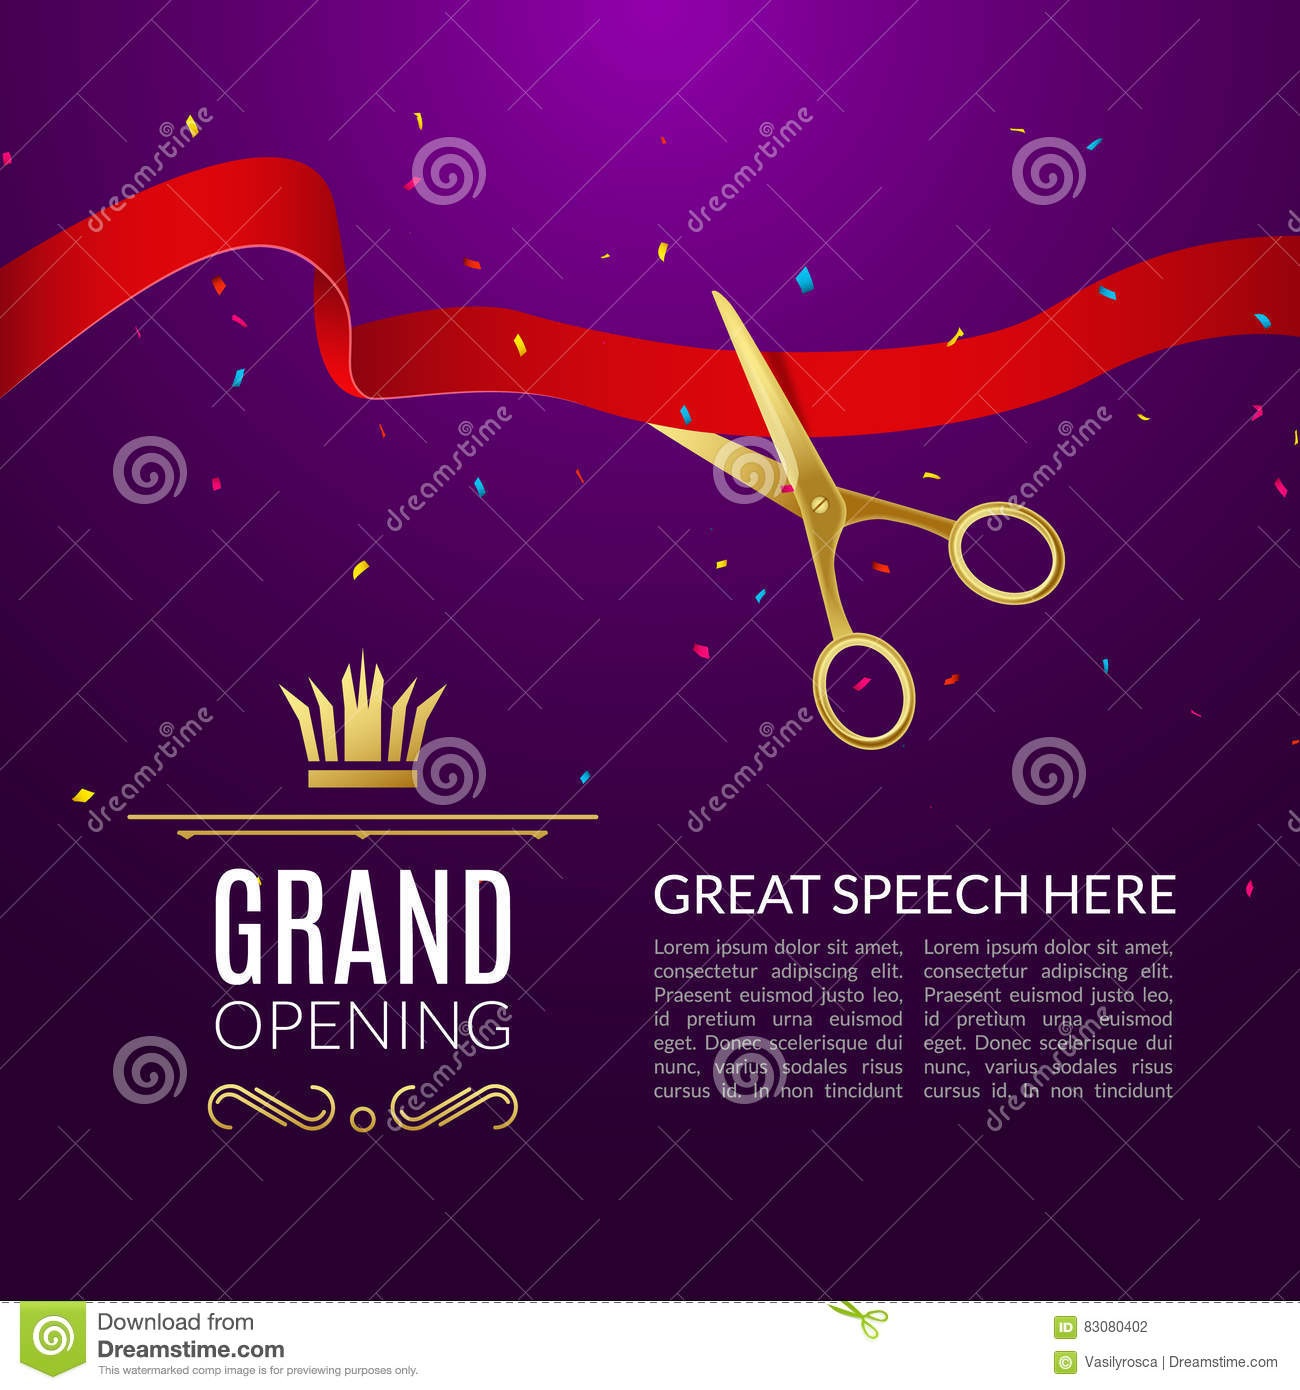 Grand Opening Design Template With Ribbon And Scissors